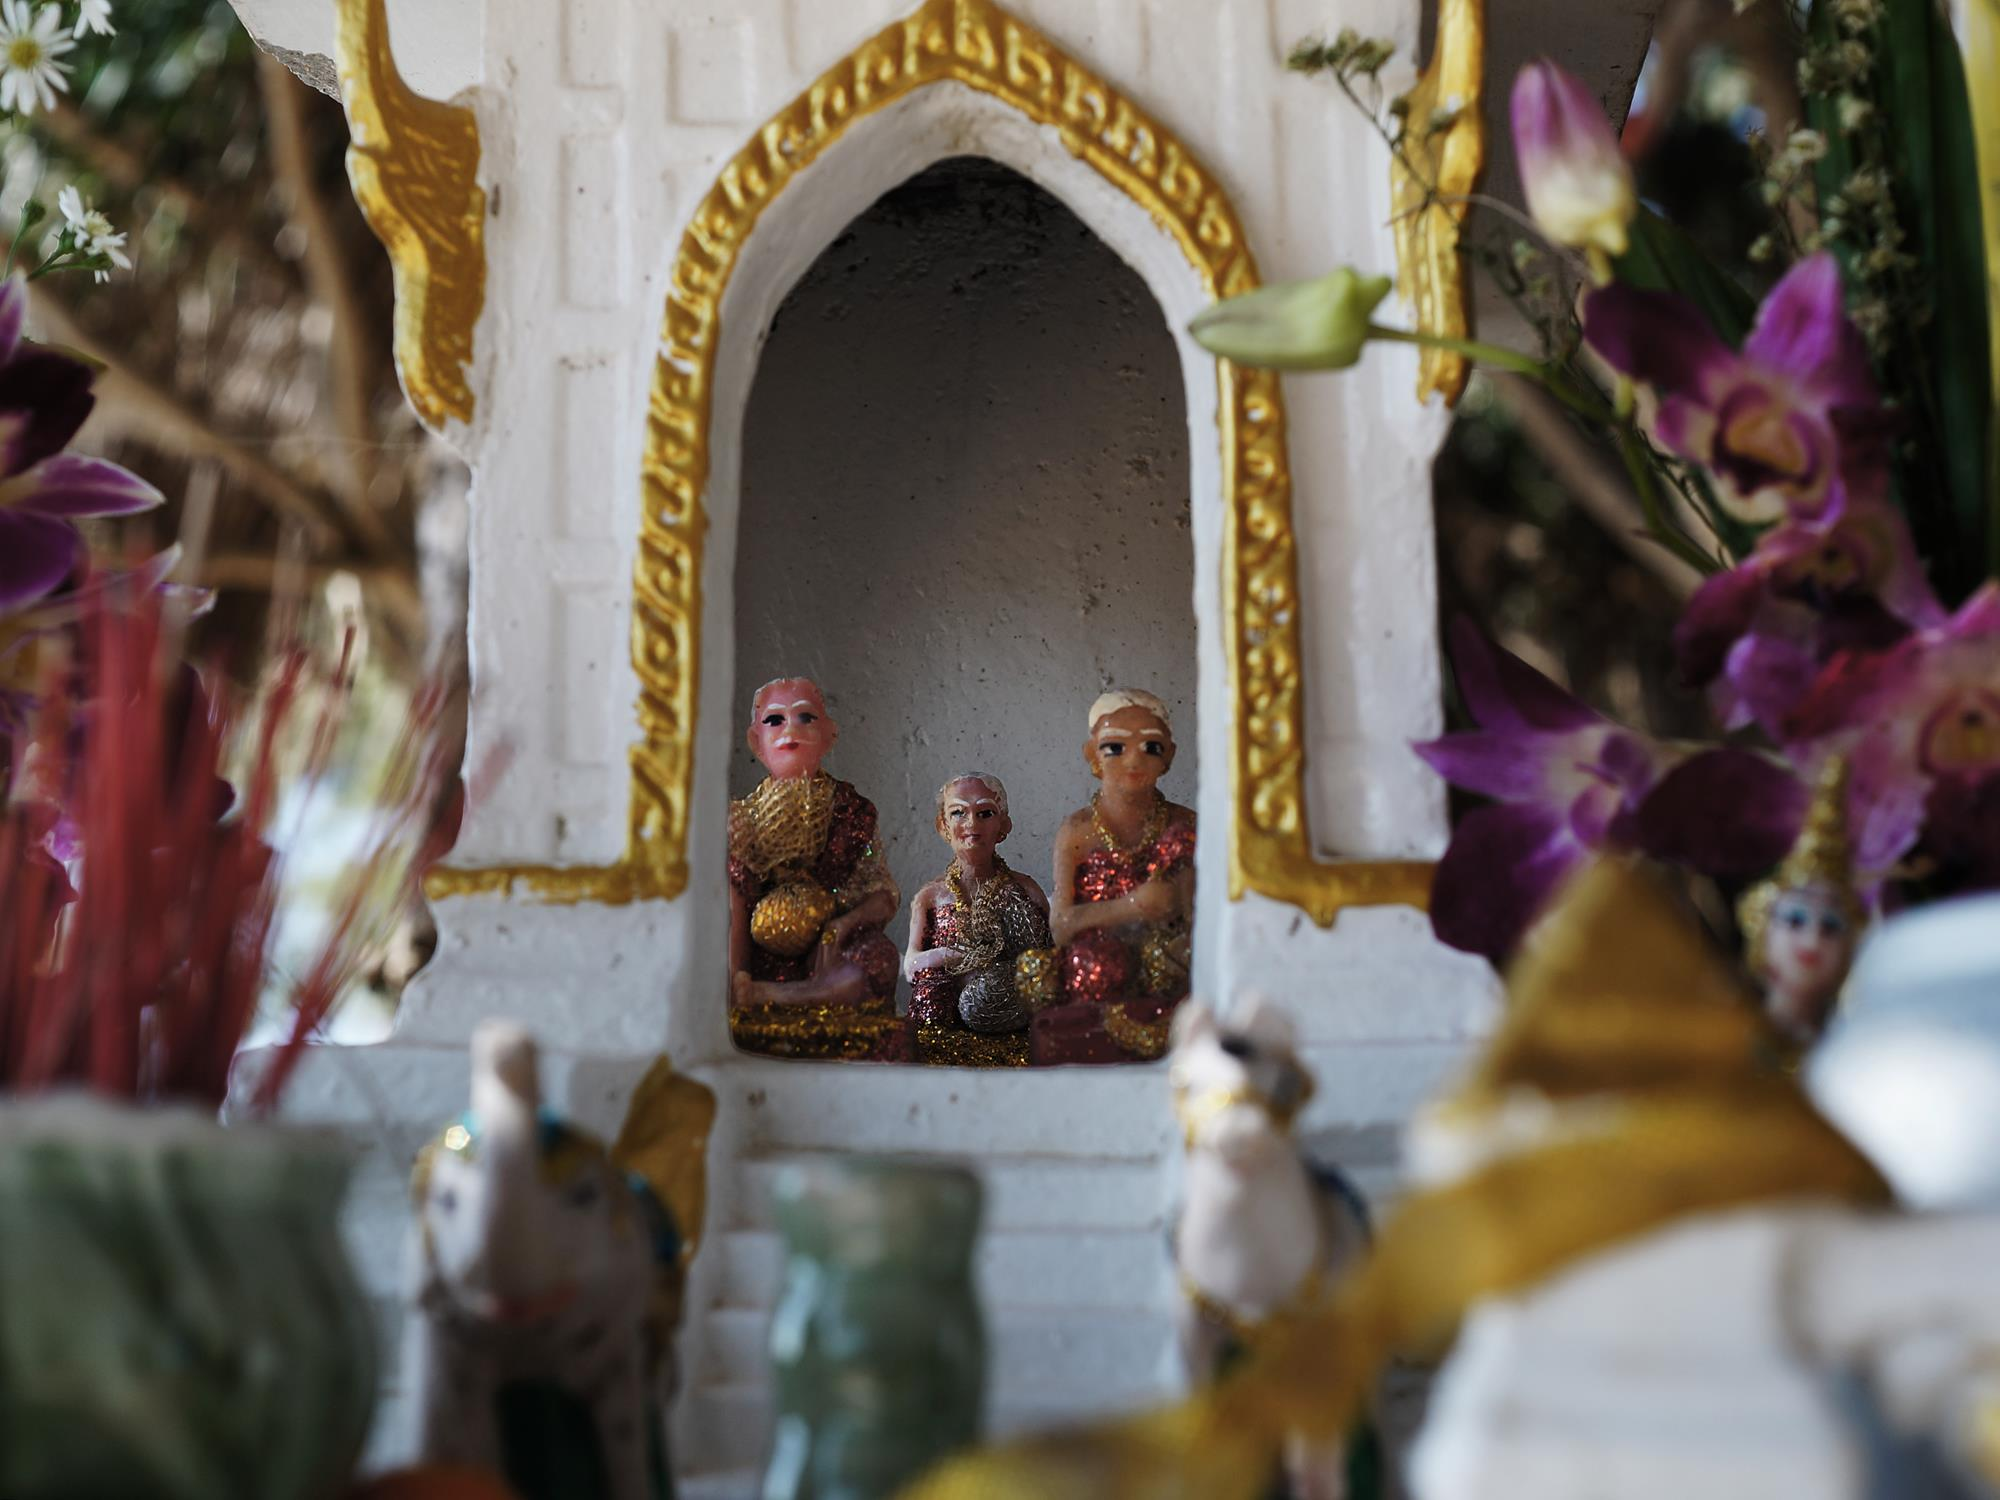 small thai buddhist figurine shrine